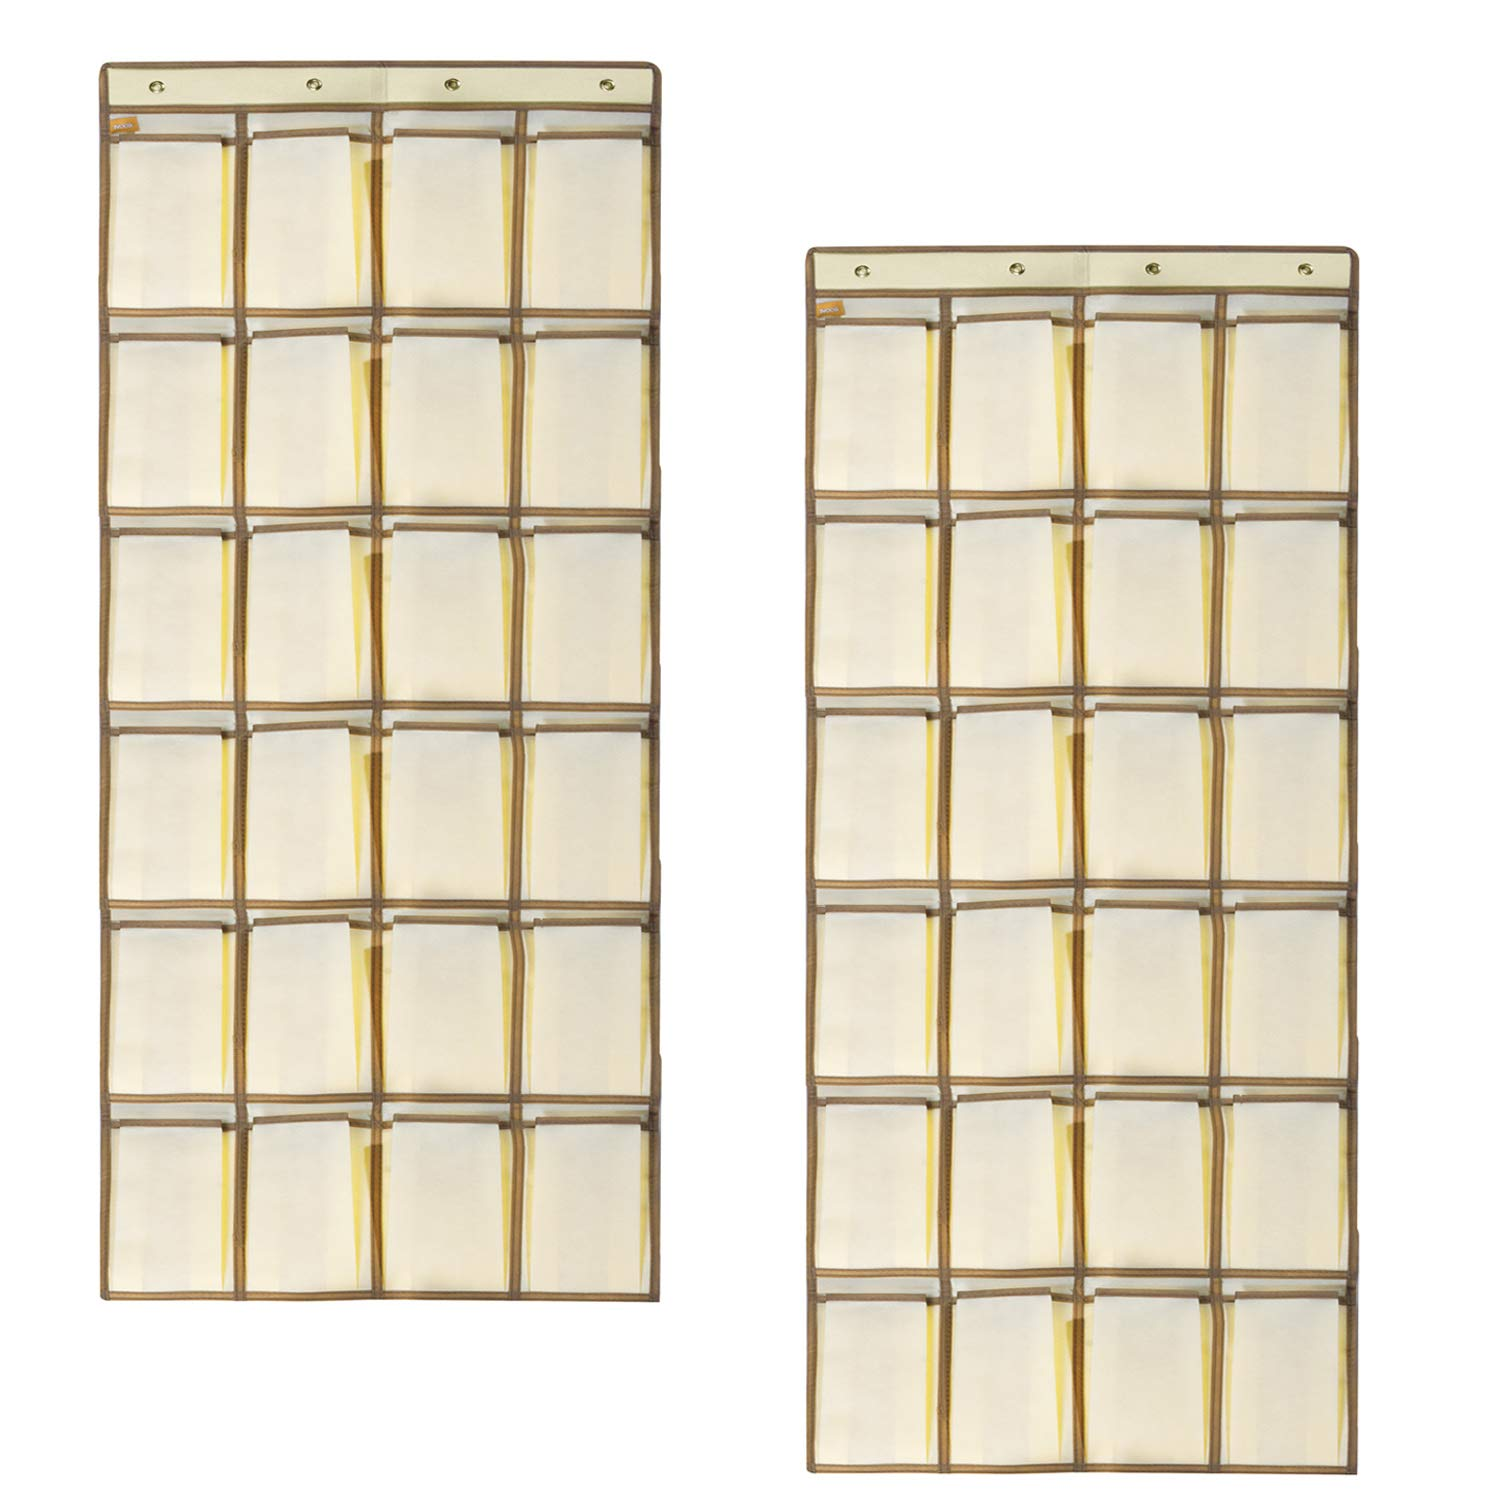 TVOOD 2 Pack Shoe Organiser Over the Door, 24 Large Pockets Back Door Shoe Holder with 4 Metal Hooks, Hanging Shoe Storage Holder for Space Saving, (160 * 55 cm) Beige